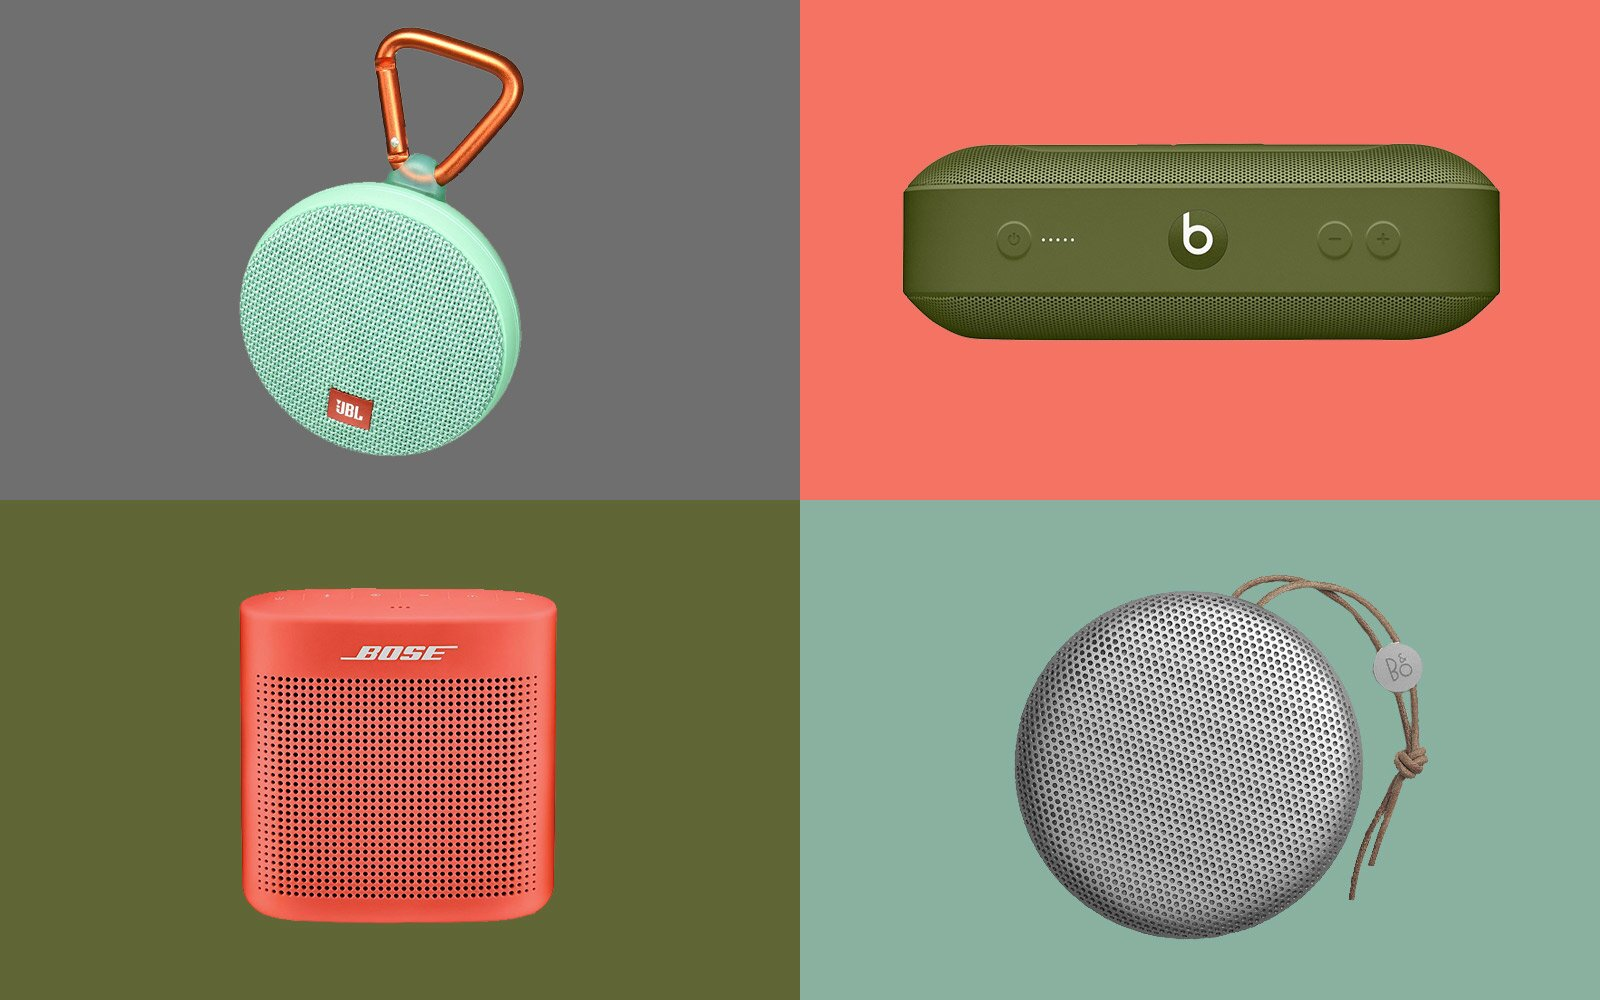 The Best Portable Speakers — Waterproof, Bluetooth, & More | Travel